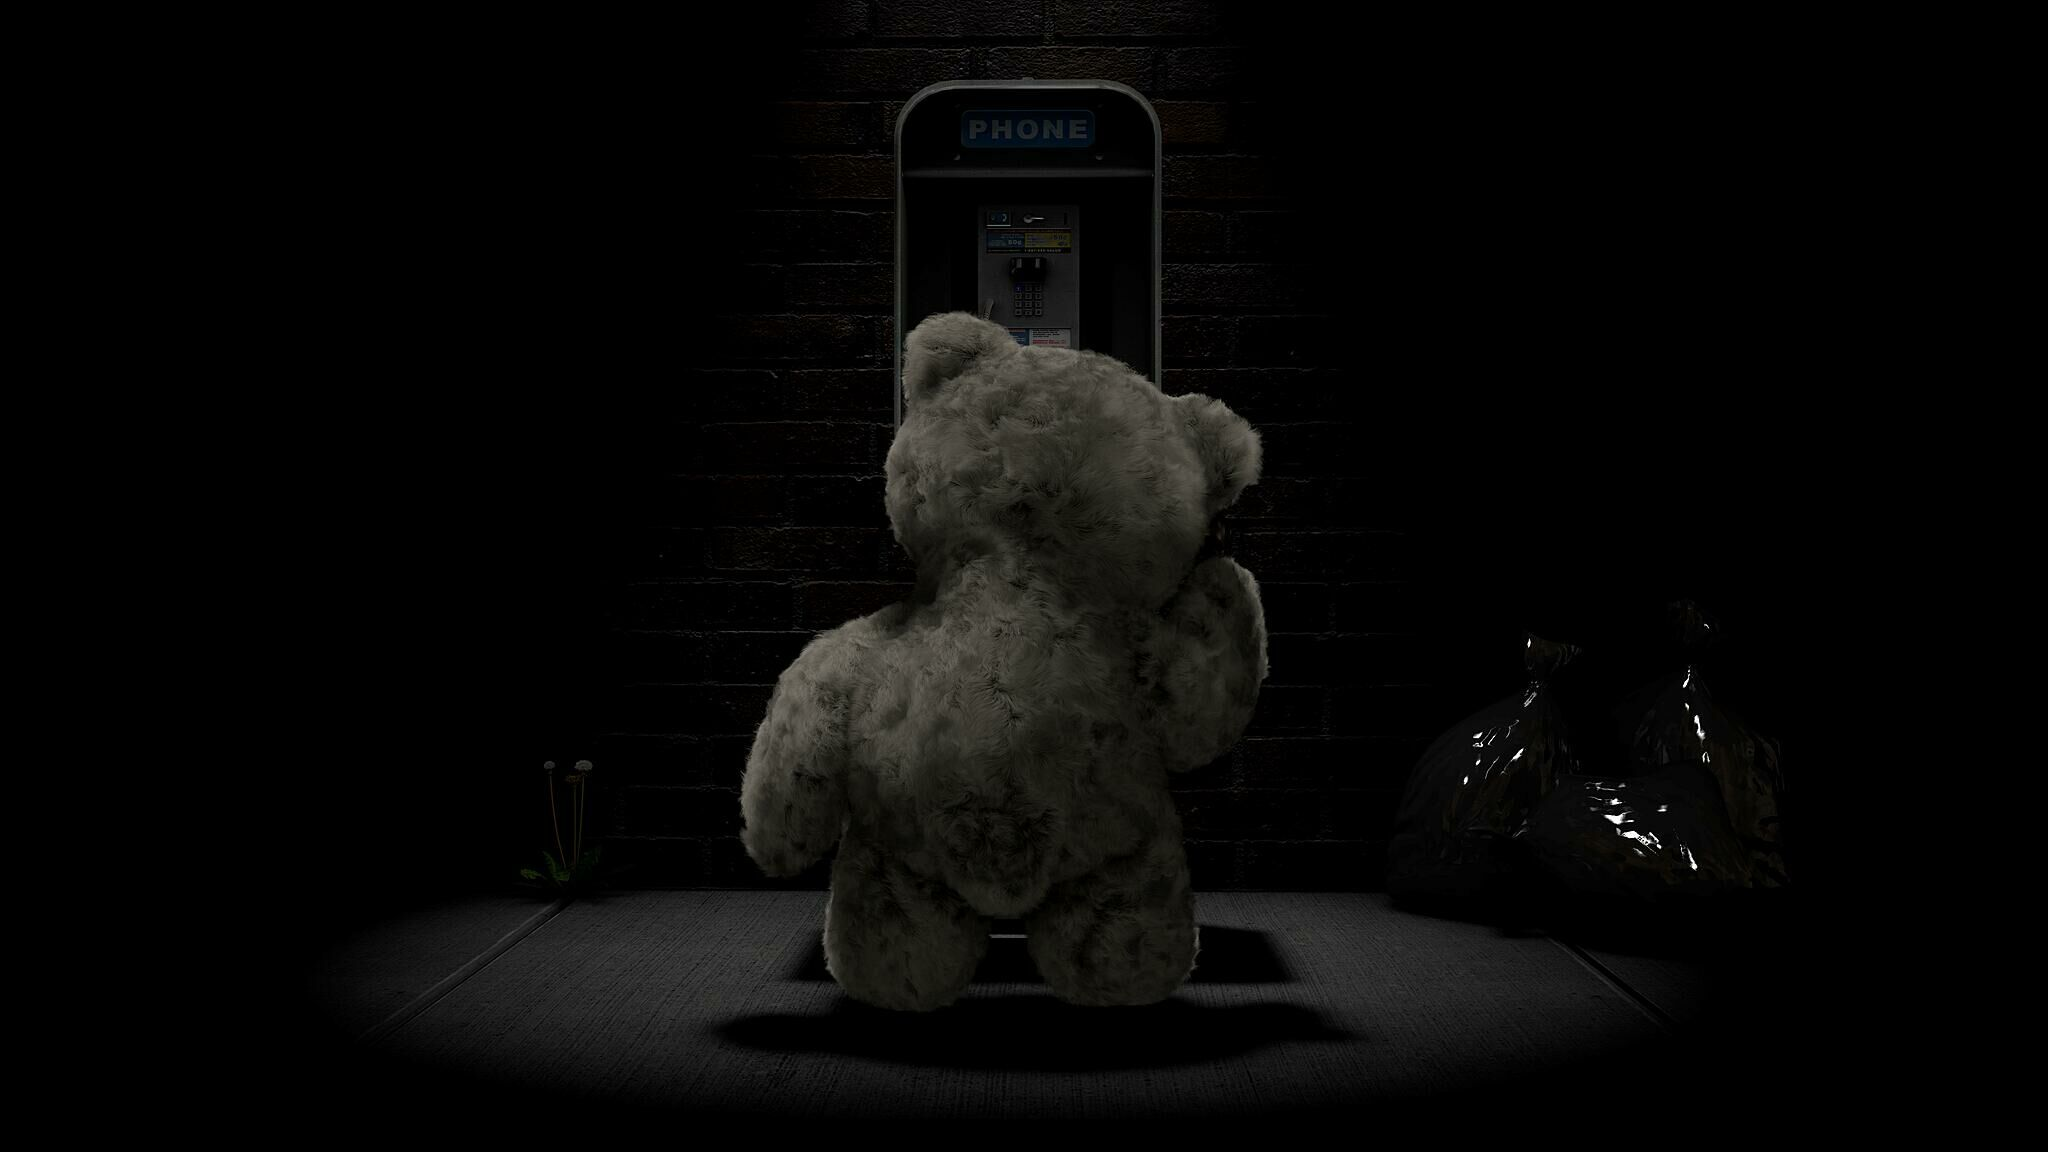 Film still of a bear.